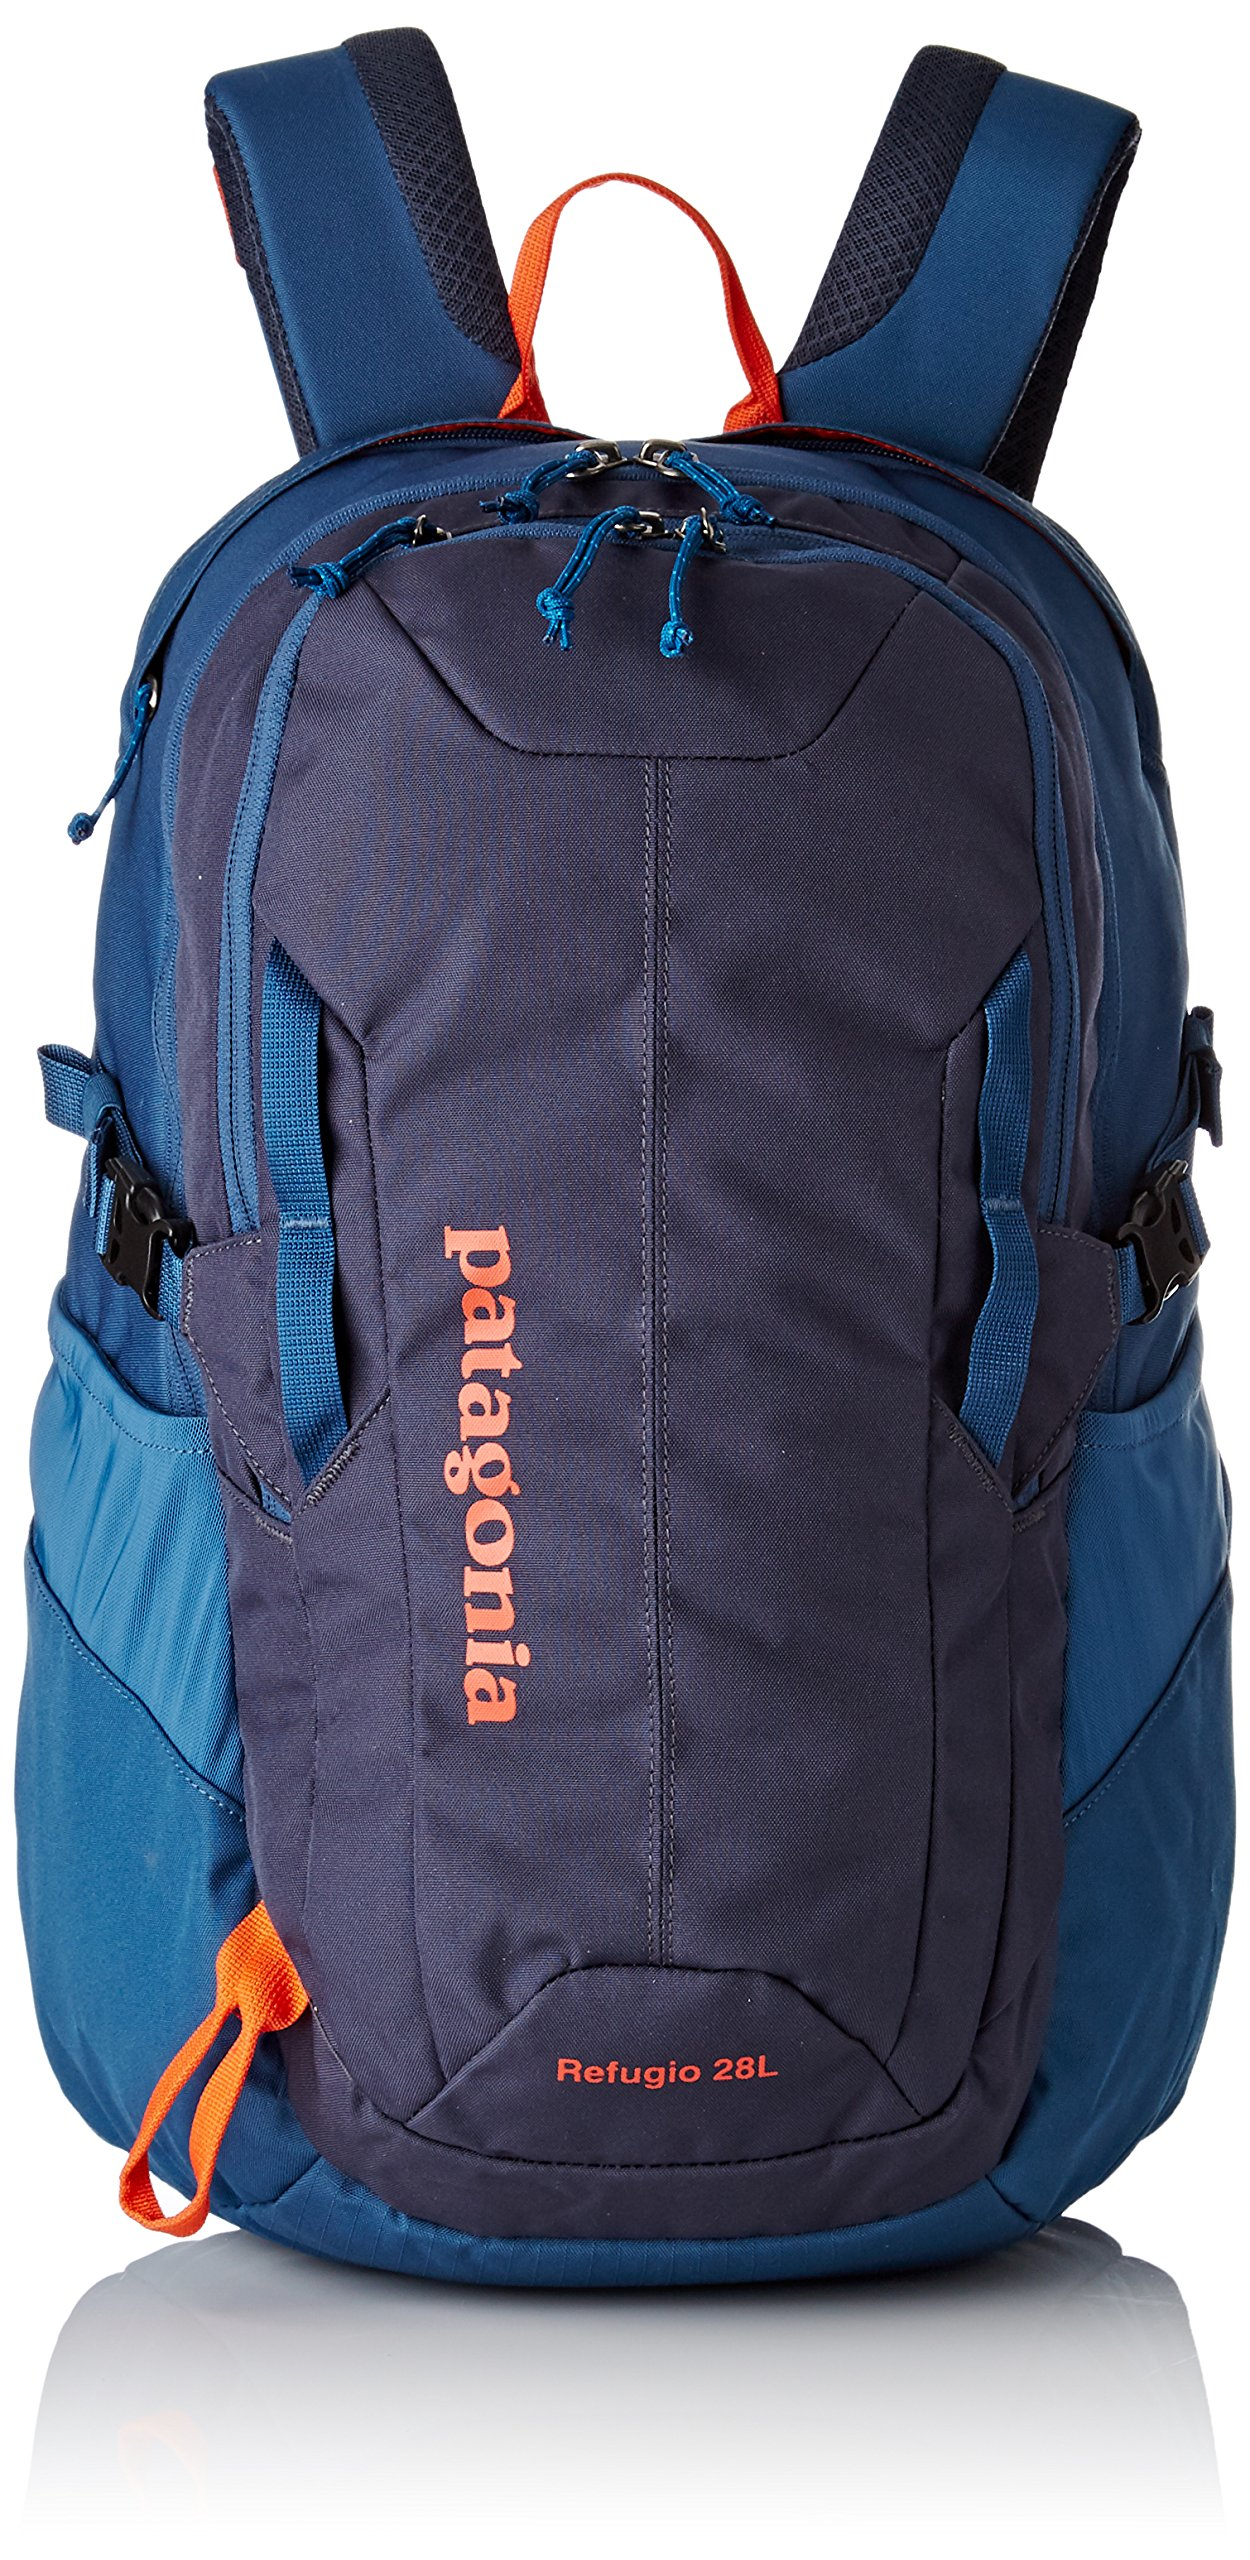 Patagonia Refugio 28L Backpack (Smolder Blue) by Patagonia